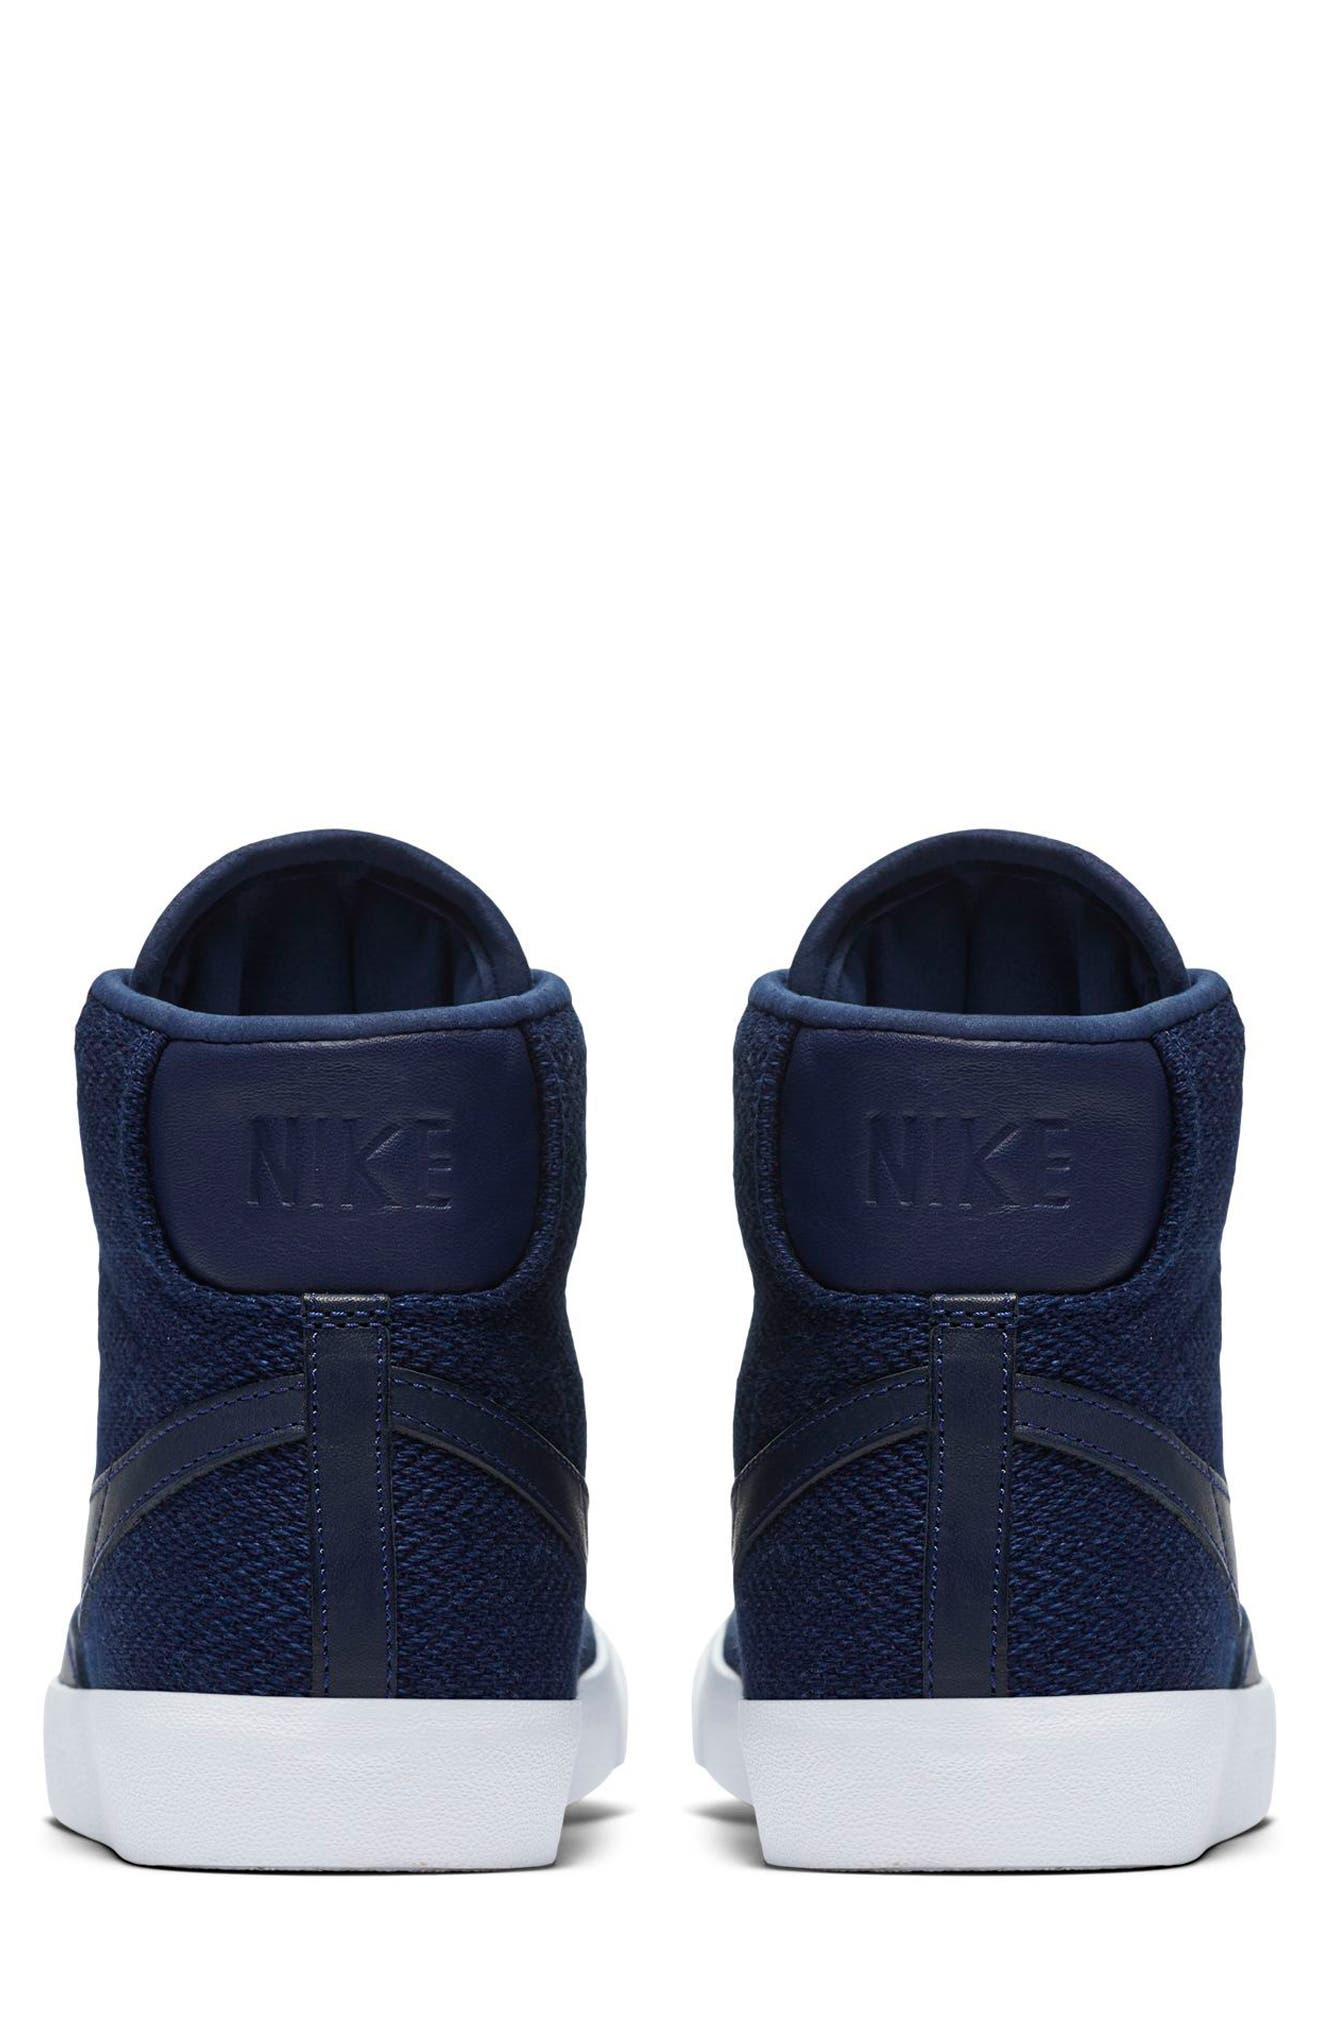 Blazer Mid Premium LX Sneaker,                             Alternate thumbnail 5, color,                             Binary Blue/ Binary Blue